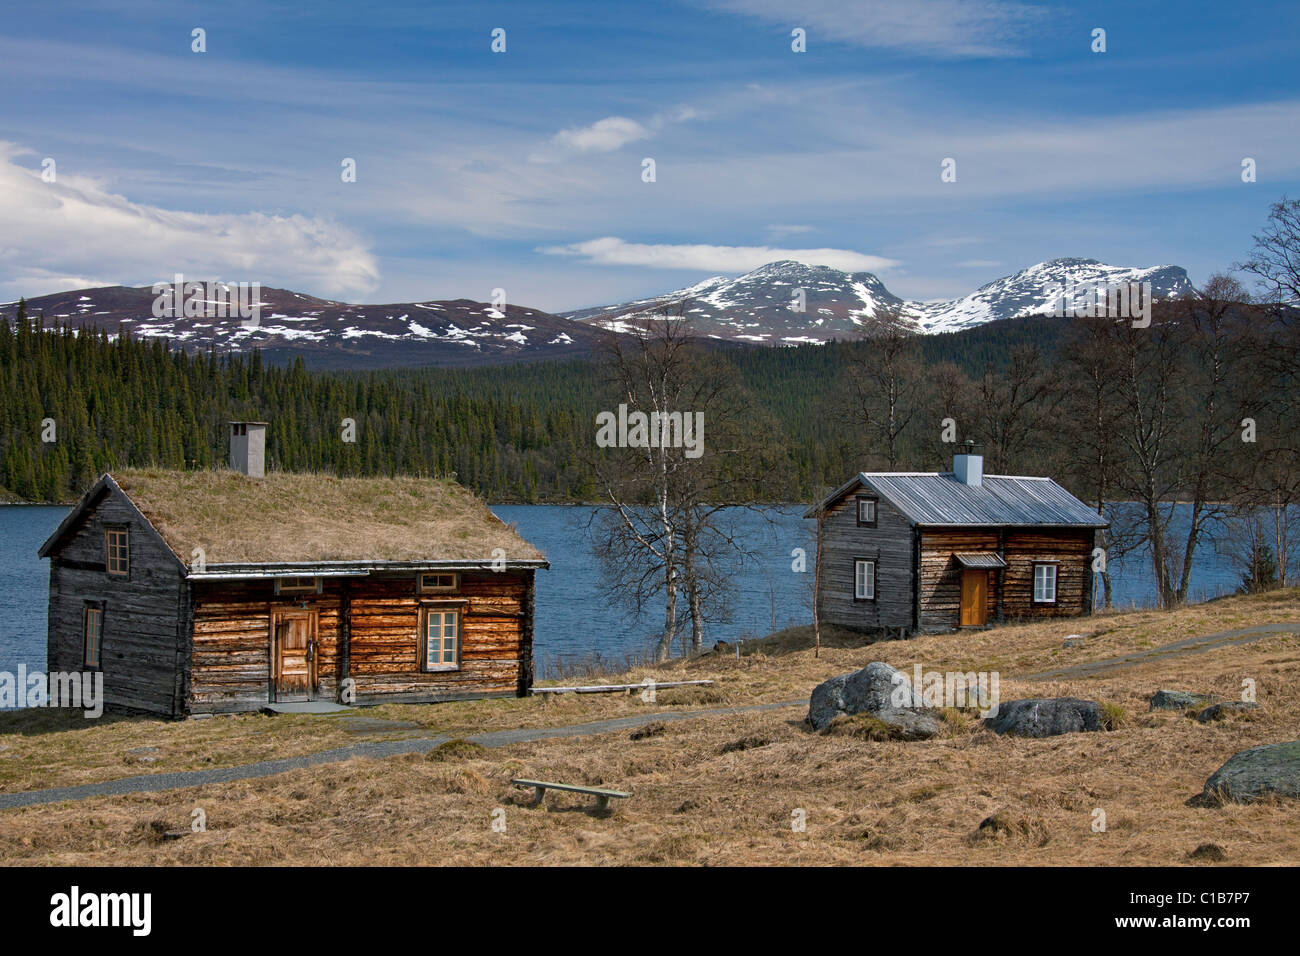 Log cabin with sod roof along lake at Fatmomakke, Lapland, Sweden - Stock Image